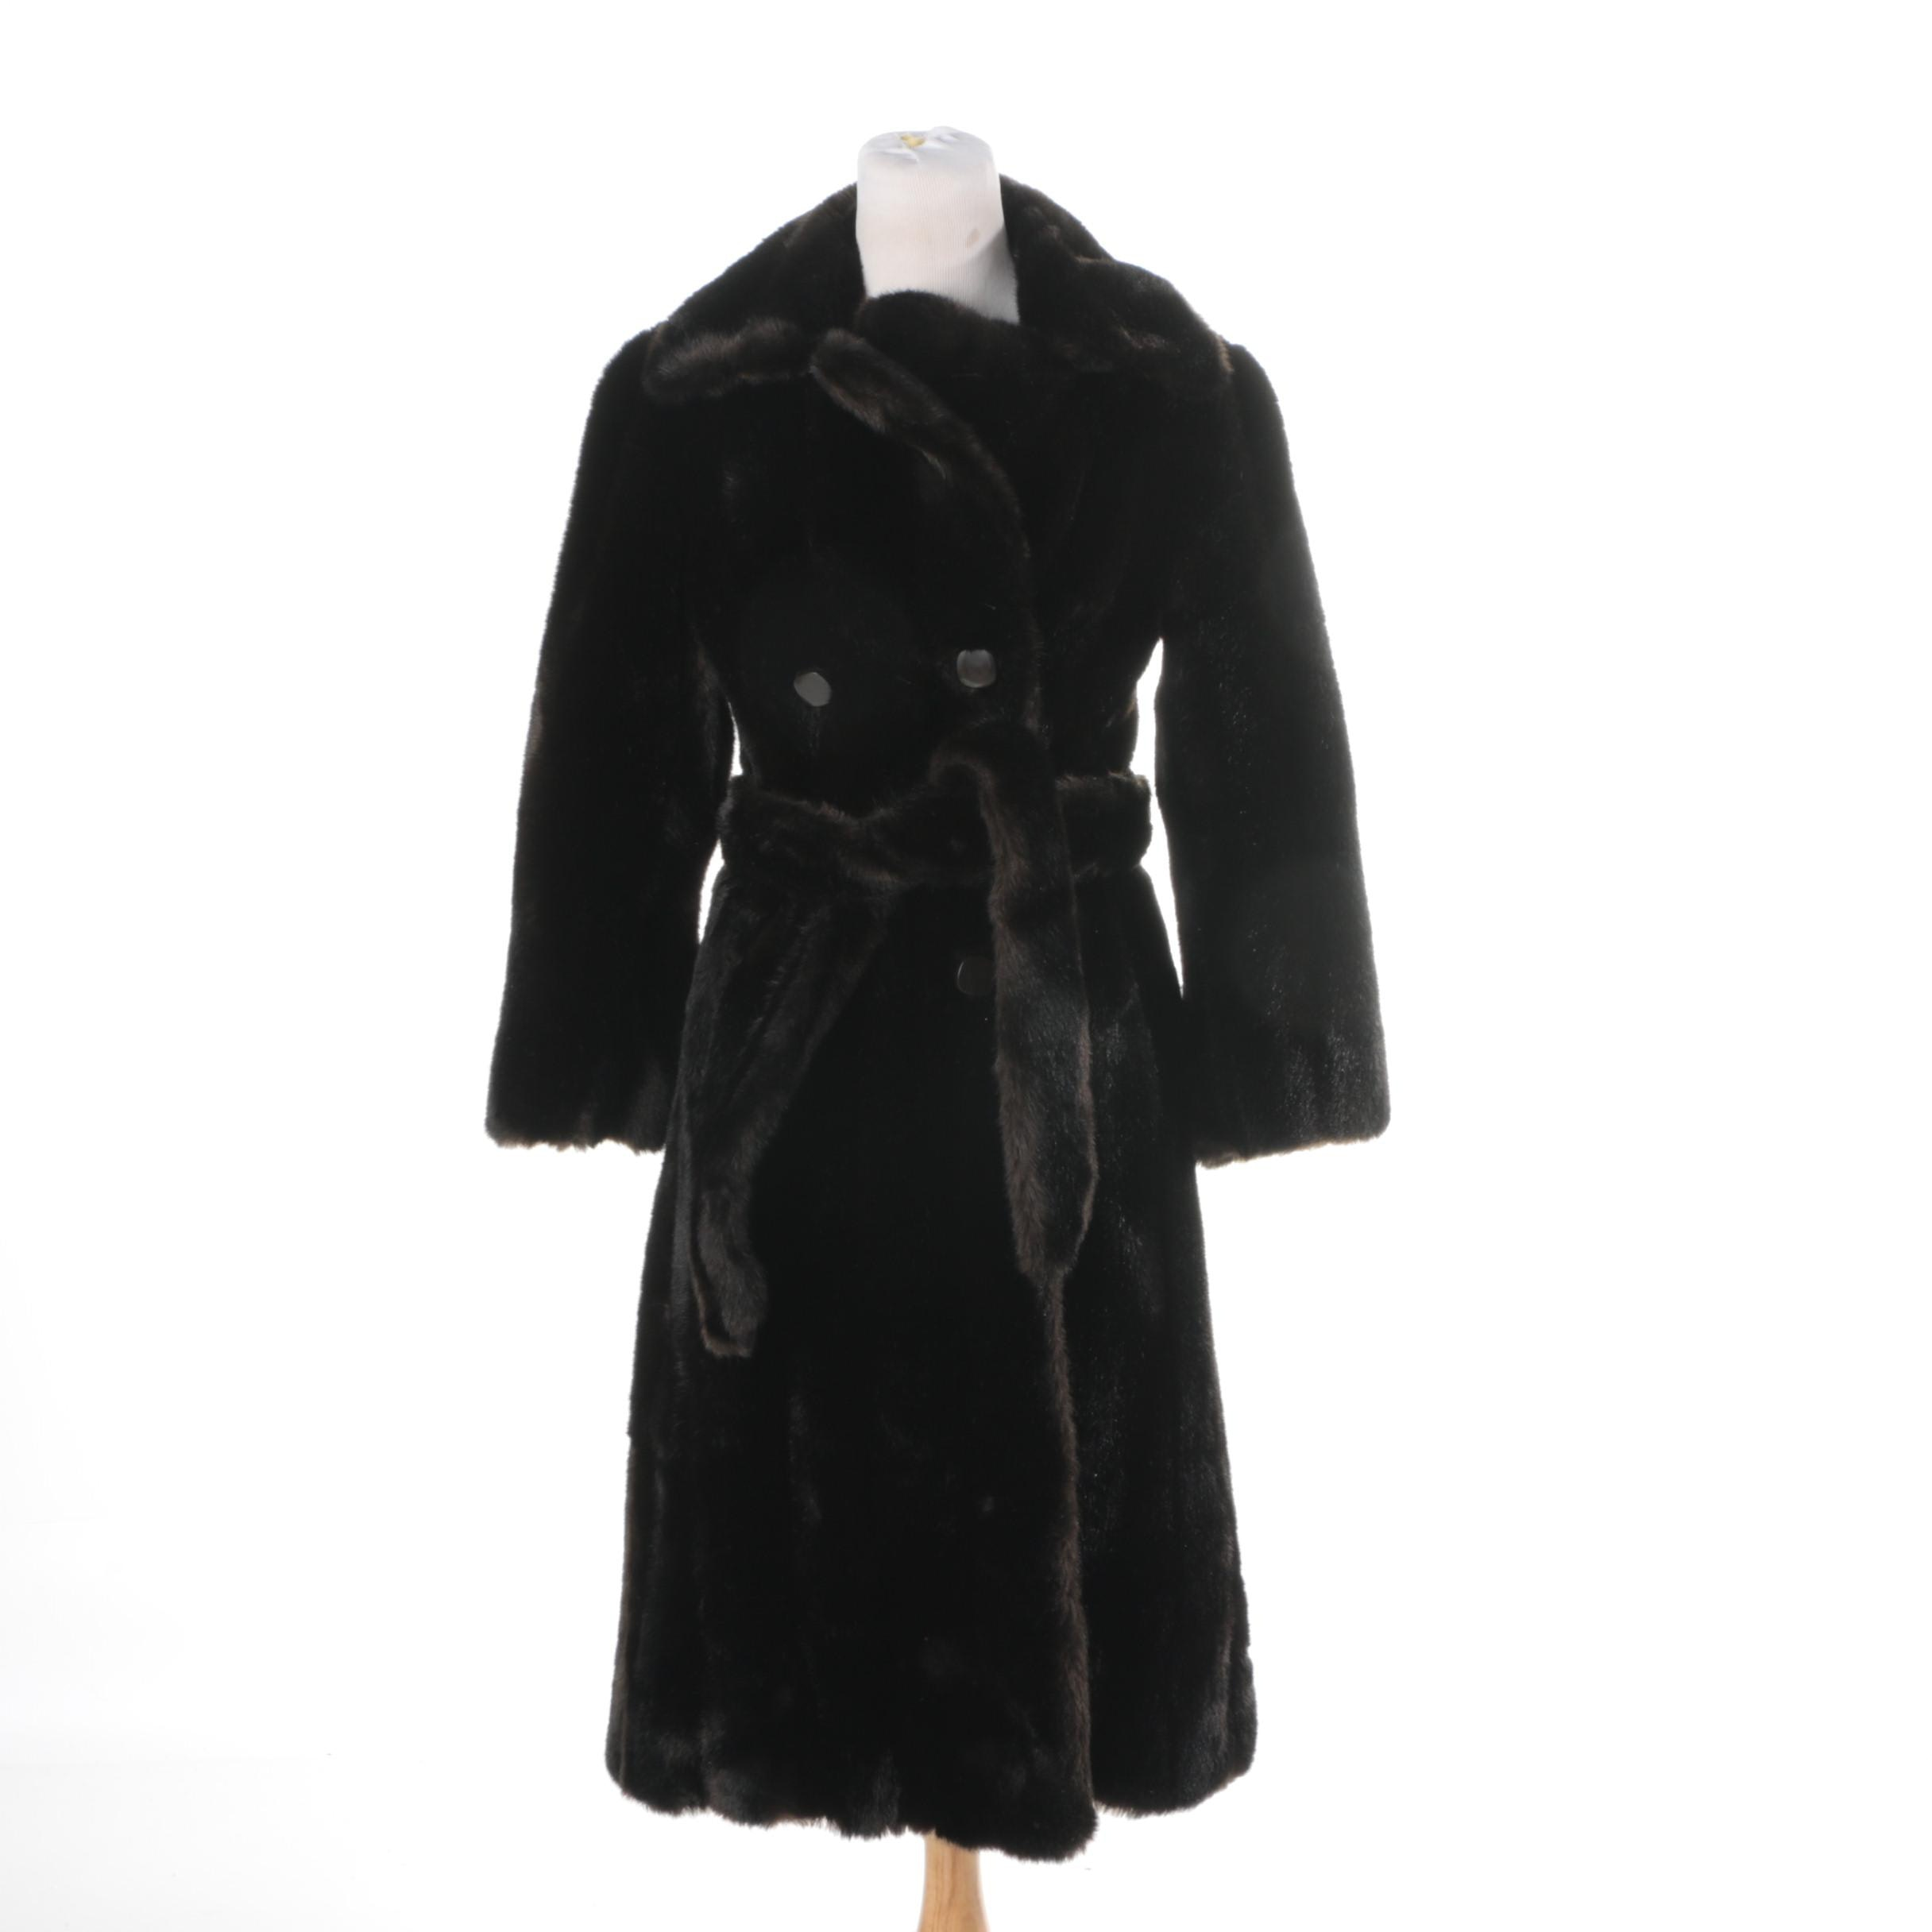 Women's Vintage Saks Fifth Avenue Double-Breasted Faux Fur Coat